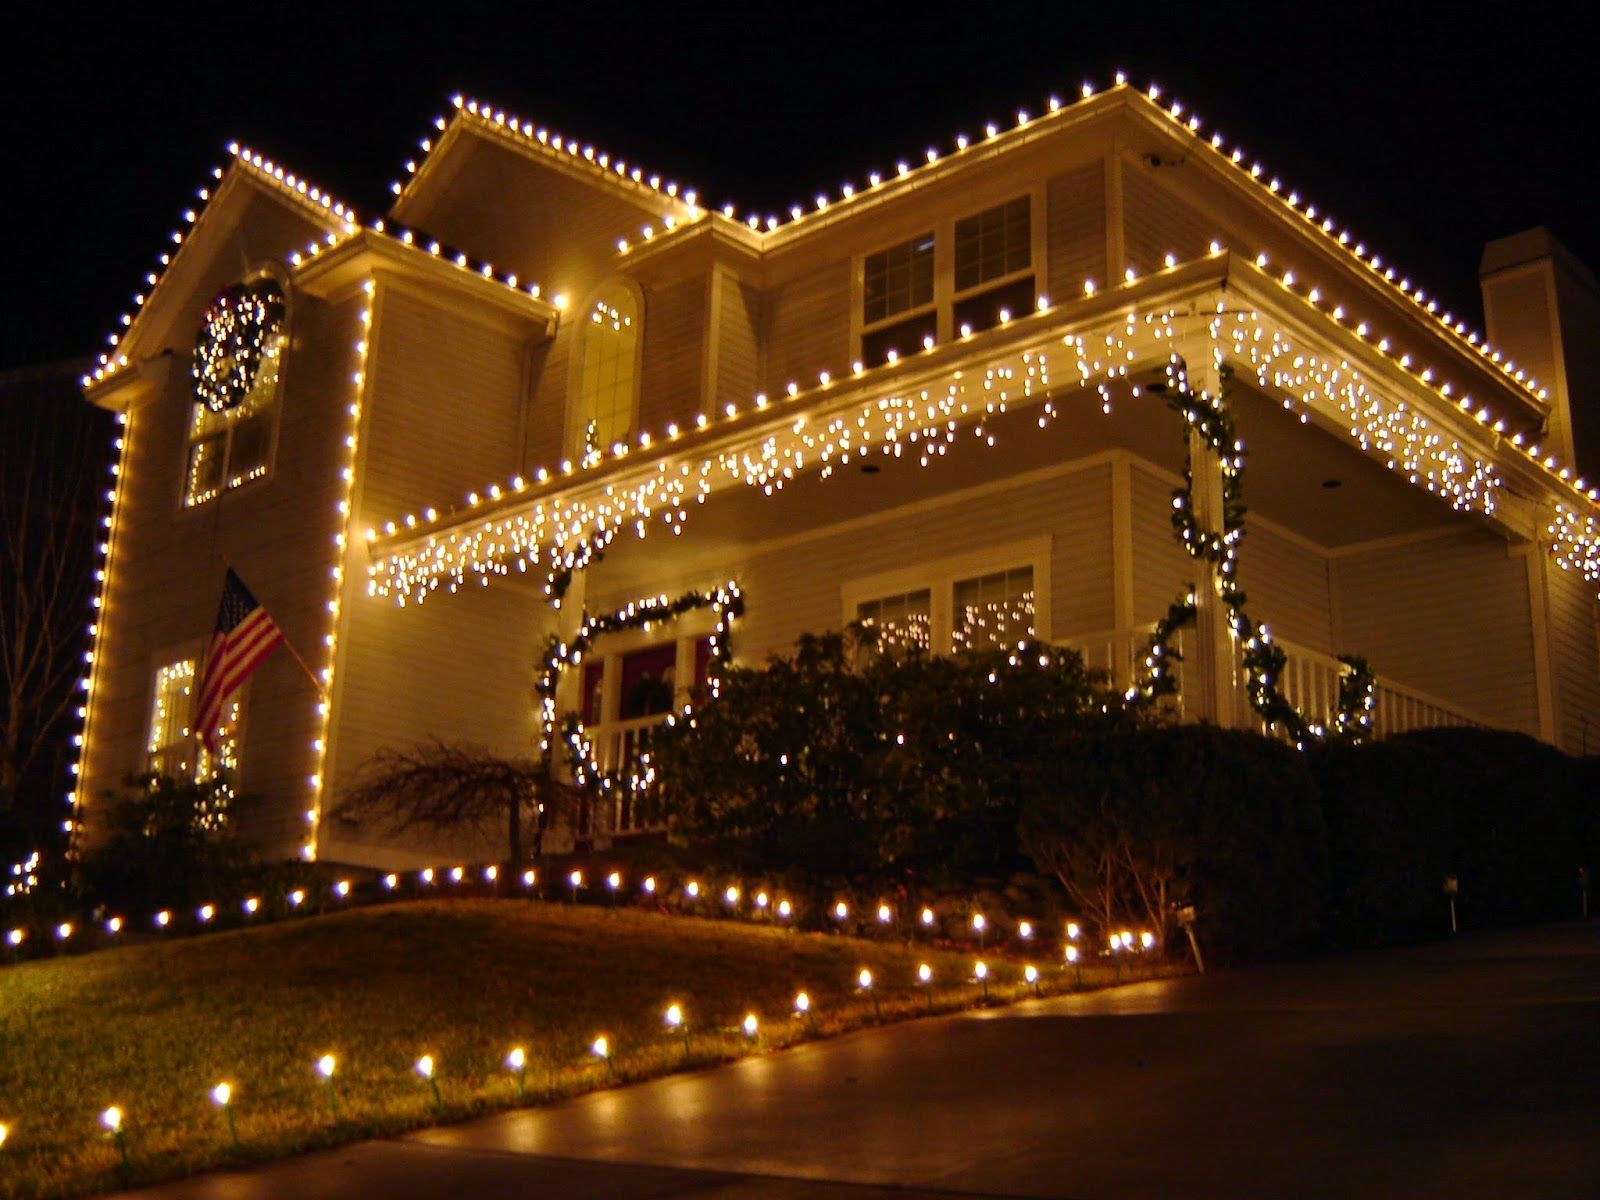 Mesmerizing Image Of Outdoor Christmas Decorations With Light Decoration  Plus White Decorating Outdoor Christmas Lighting Having Gold Outdoor Clear  Light ...